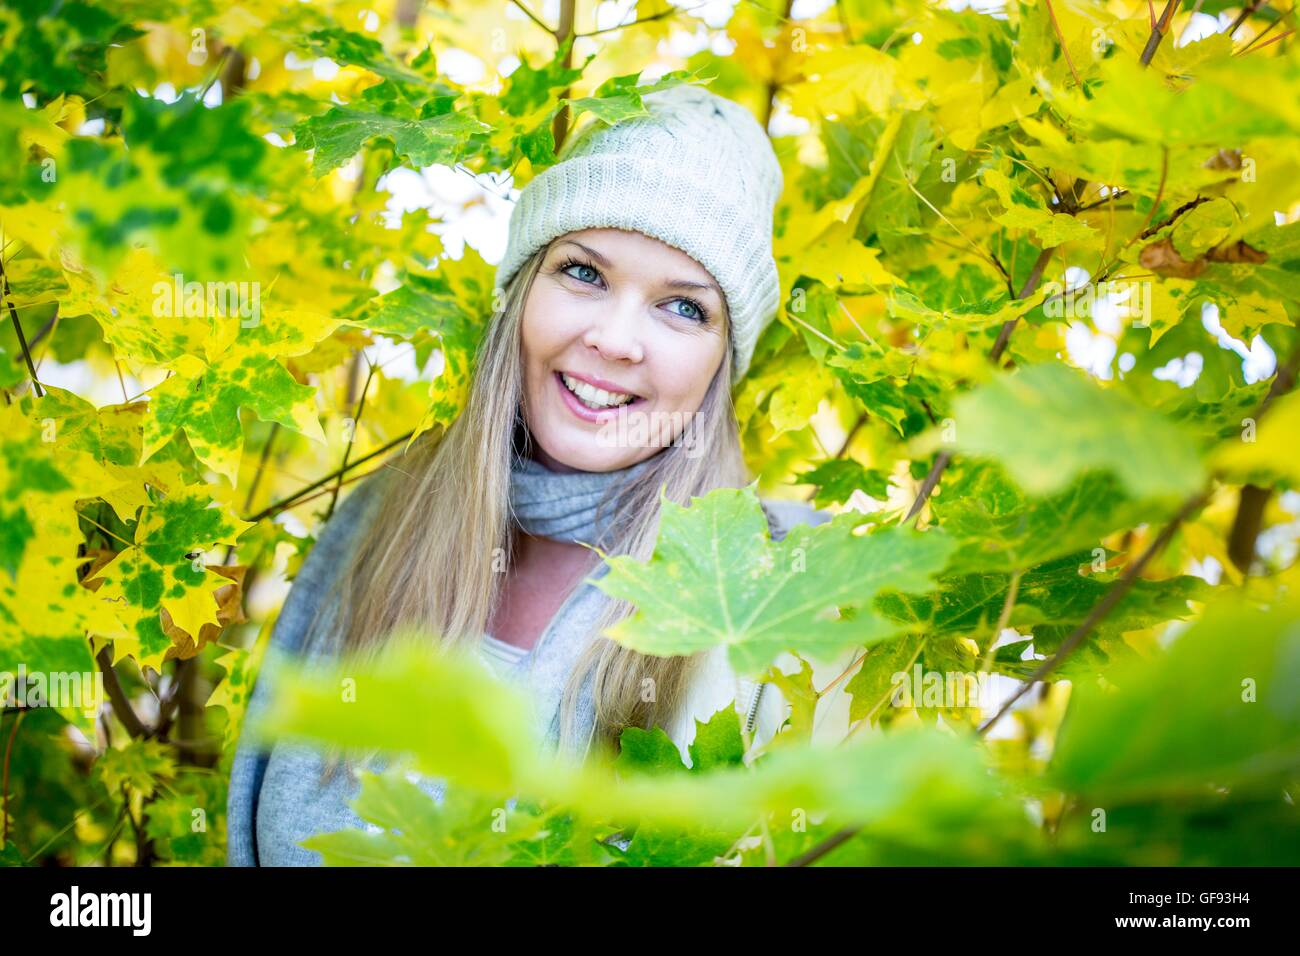 MODEL RELEASED. Young woman smiling while surrounded by autumn leaves. - Stock Image